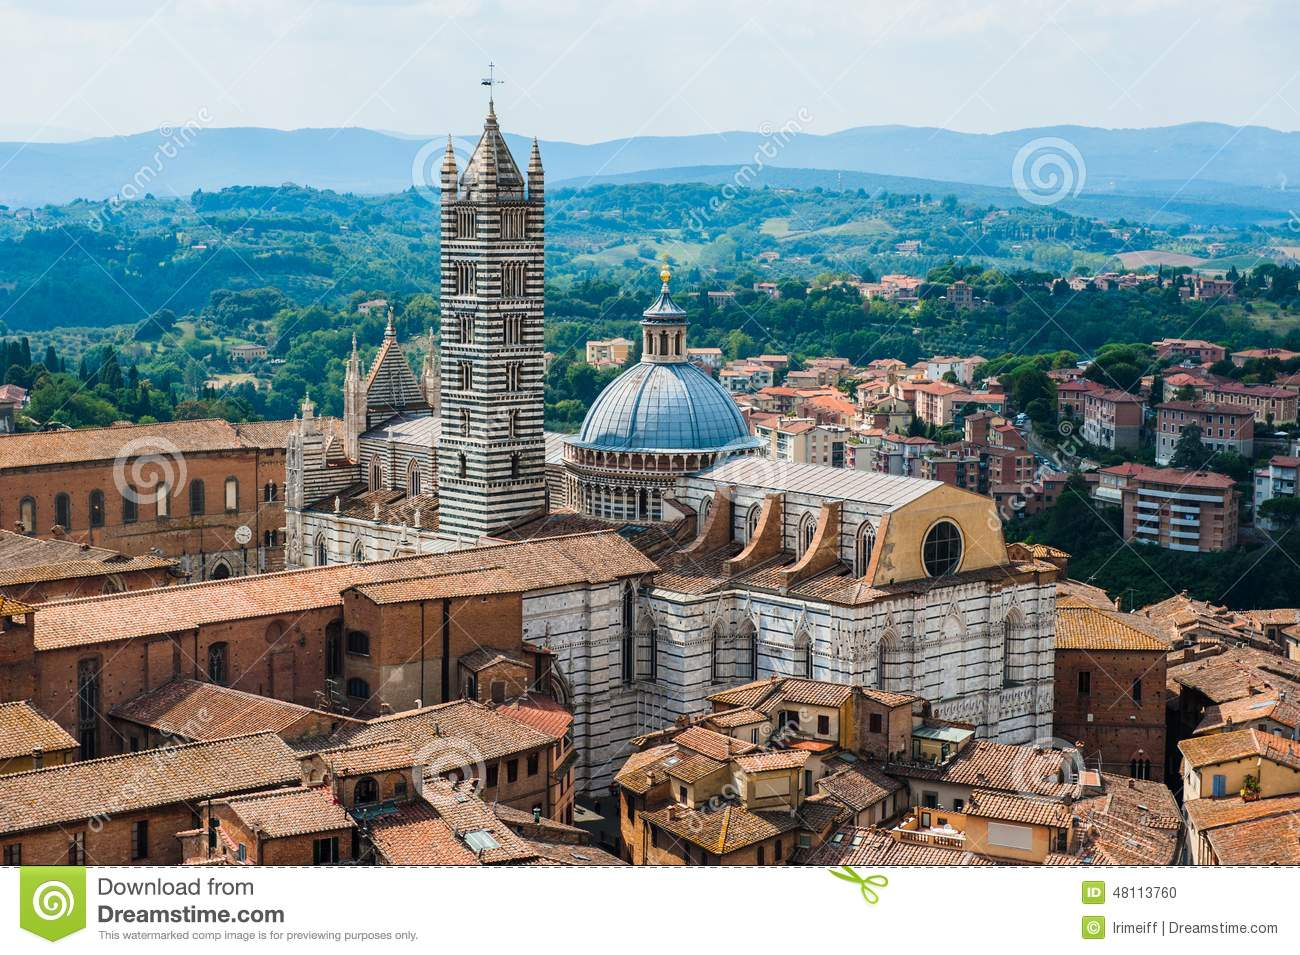 Siena Image Of Ancient Italy City View From The Top